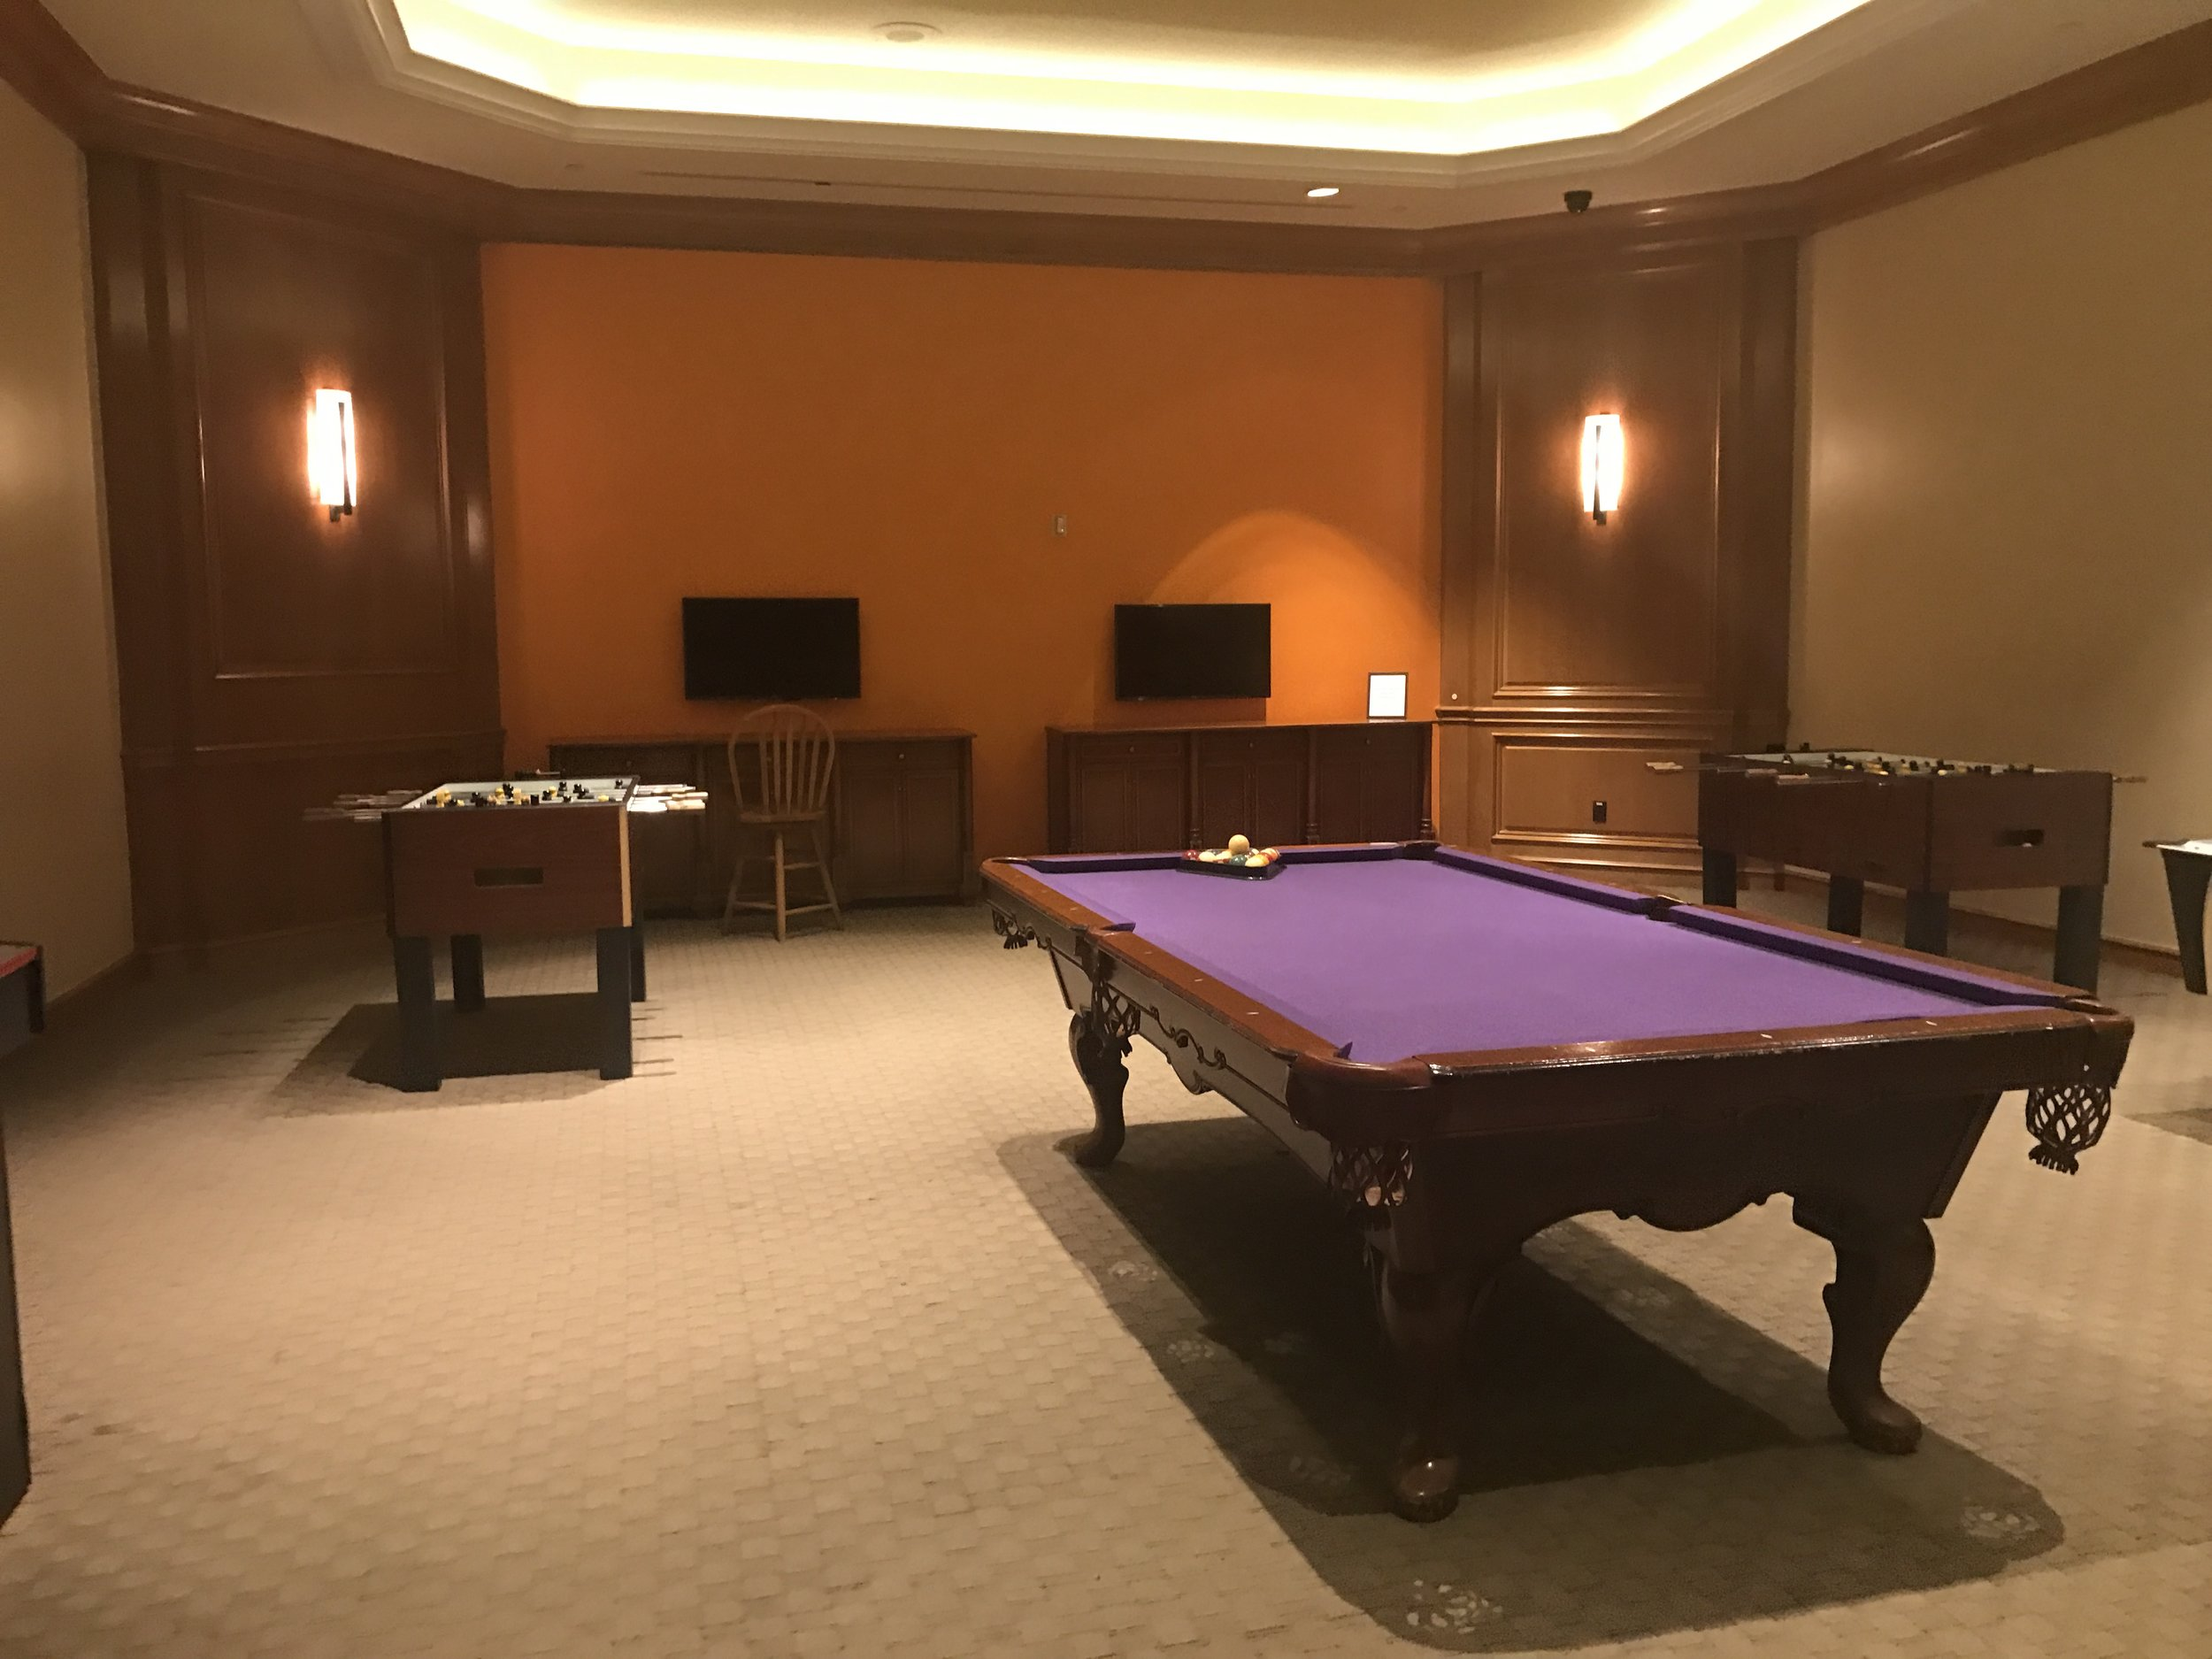 One of the two game rooms in the hotel